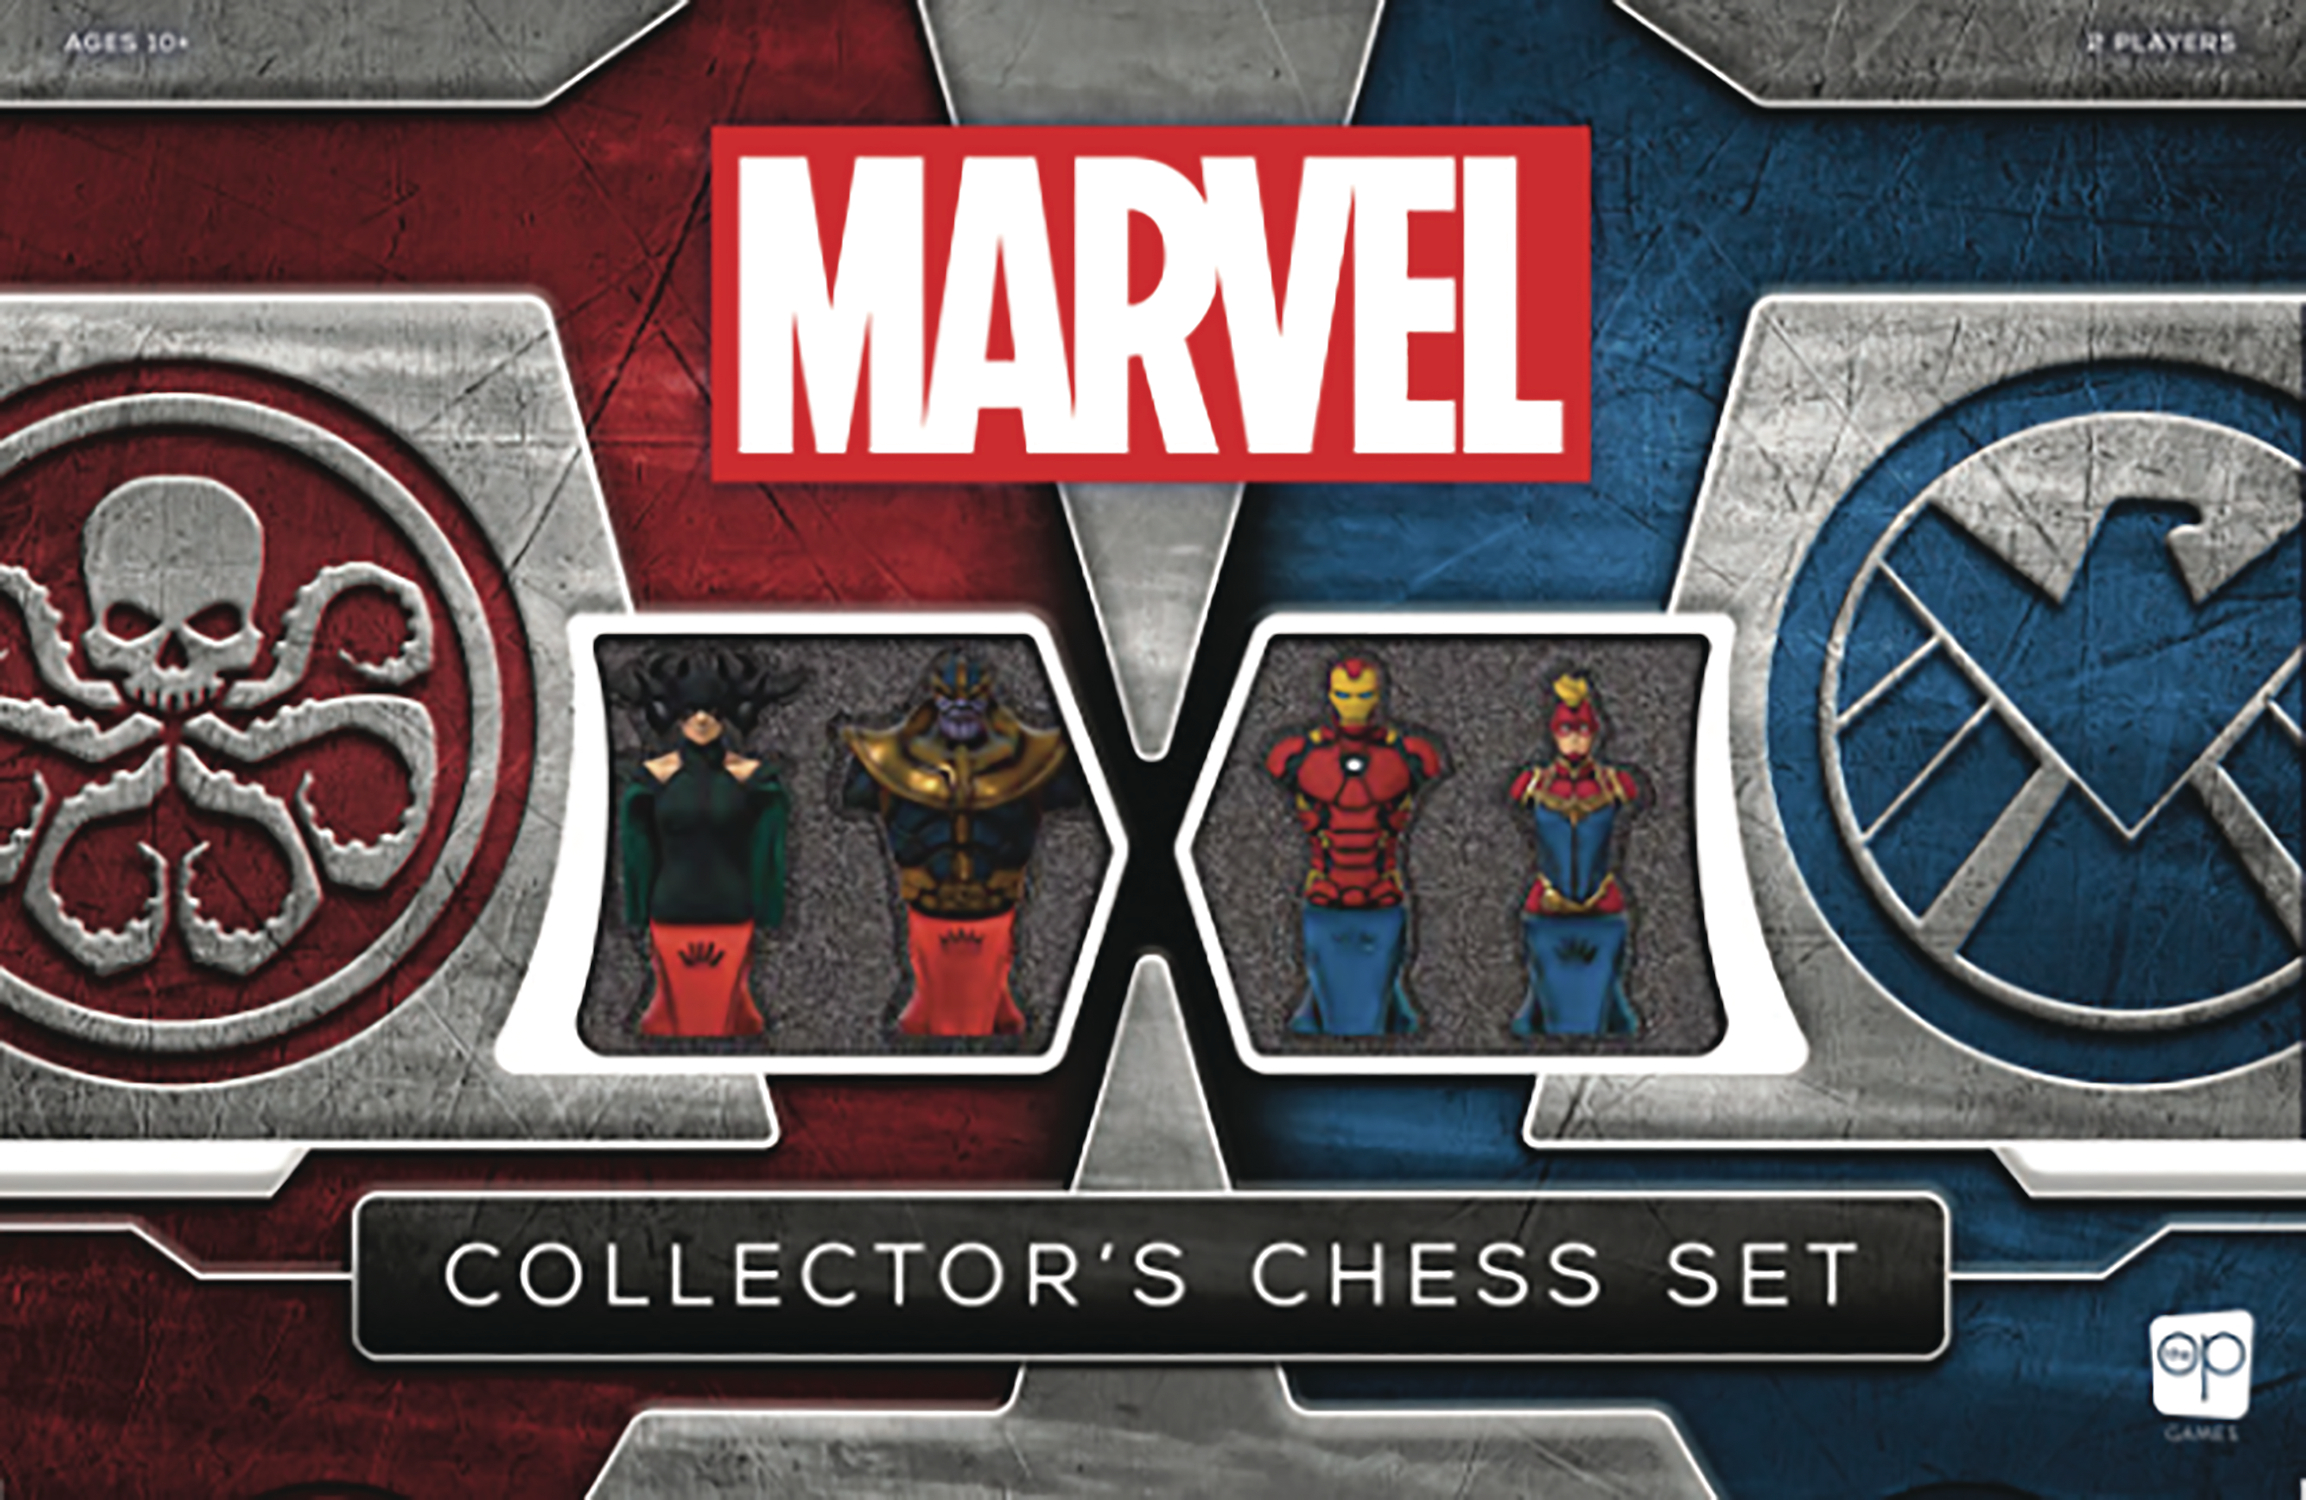 MARVEL CHESS BOARDGAME